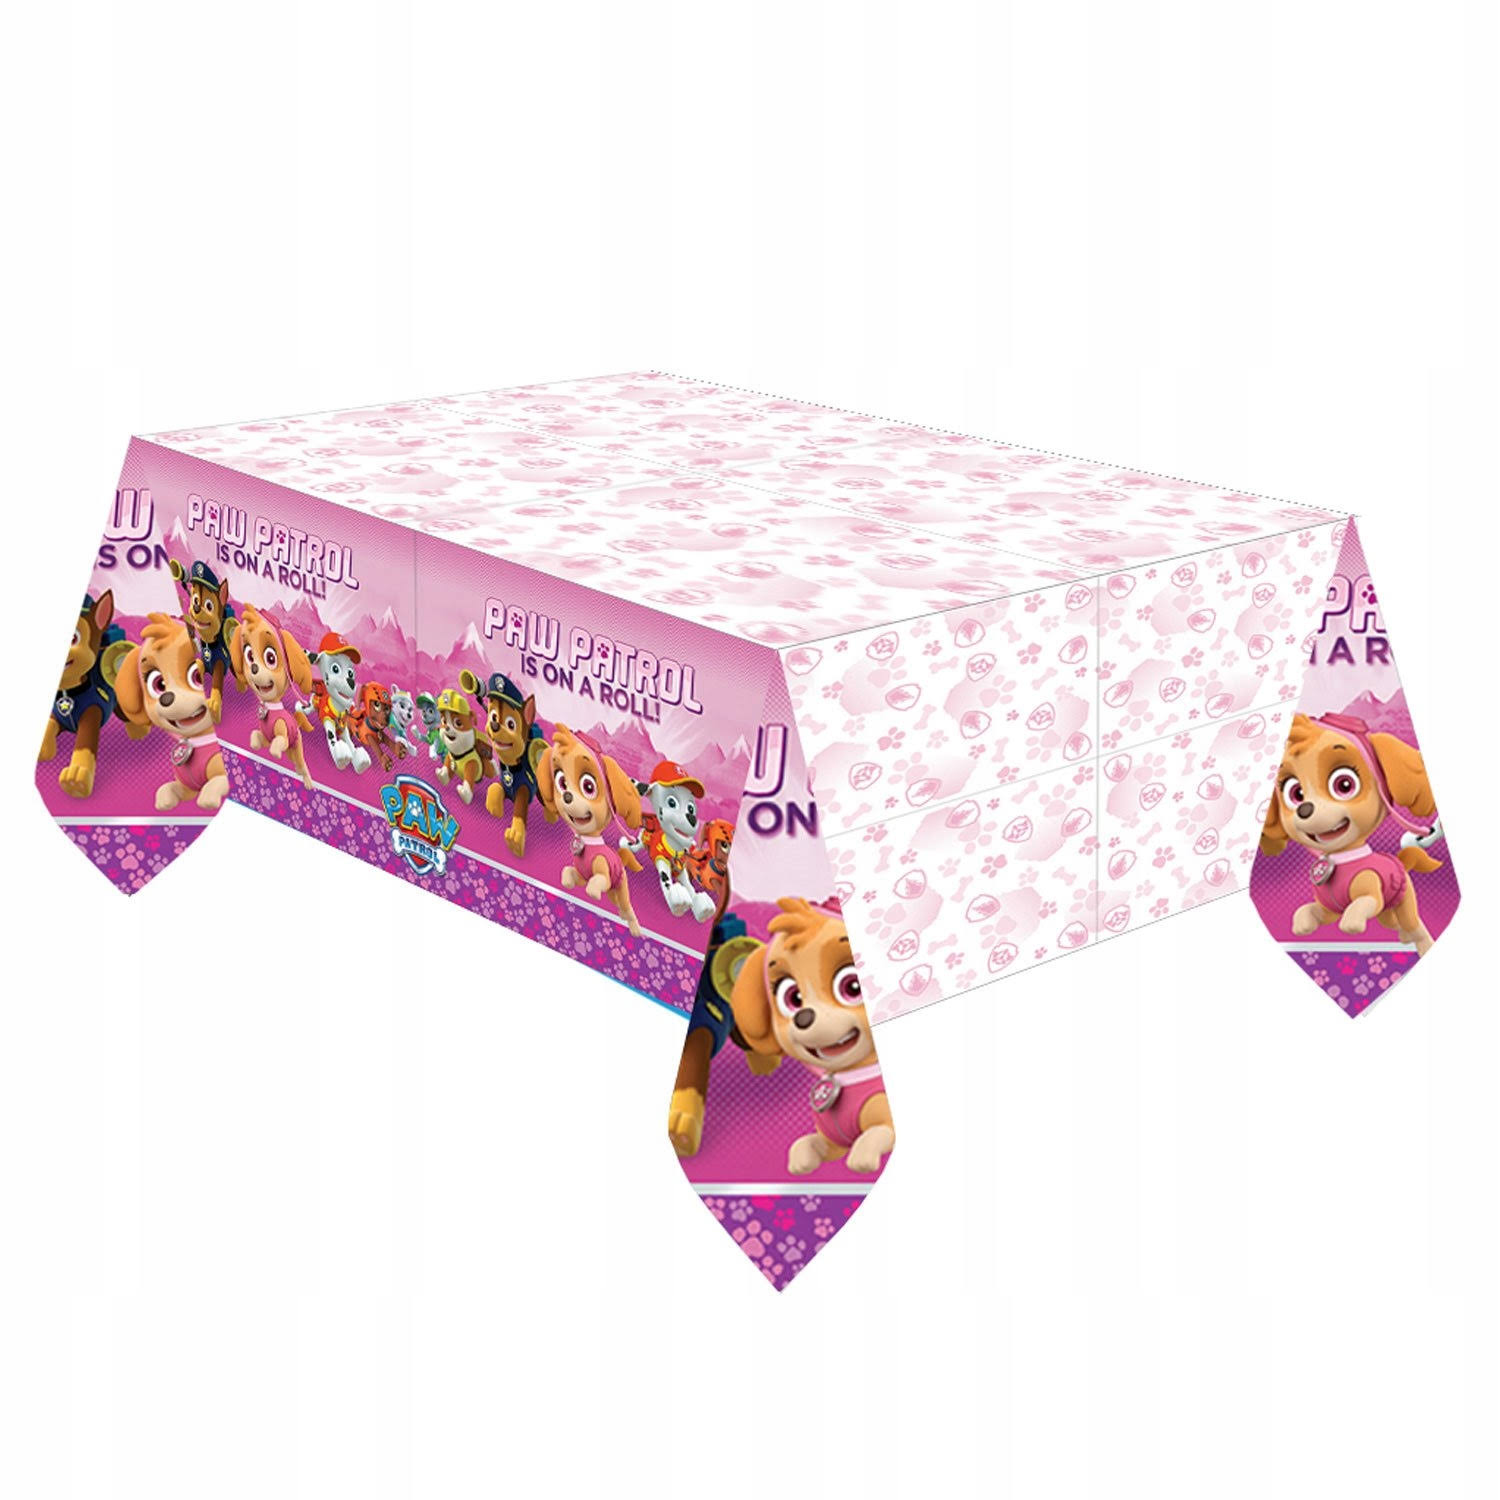 "American Greetings Paw Patrol Plastic Table Cover - Pink, 54"" x 96"""